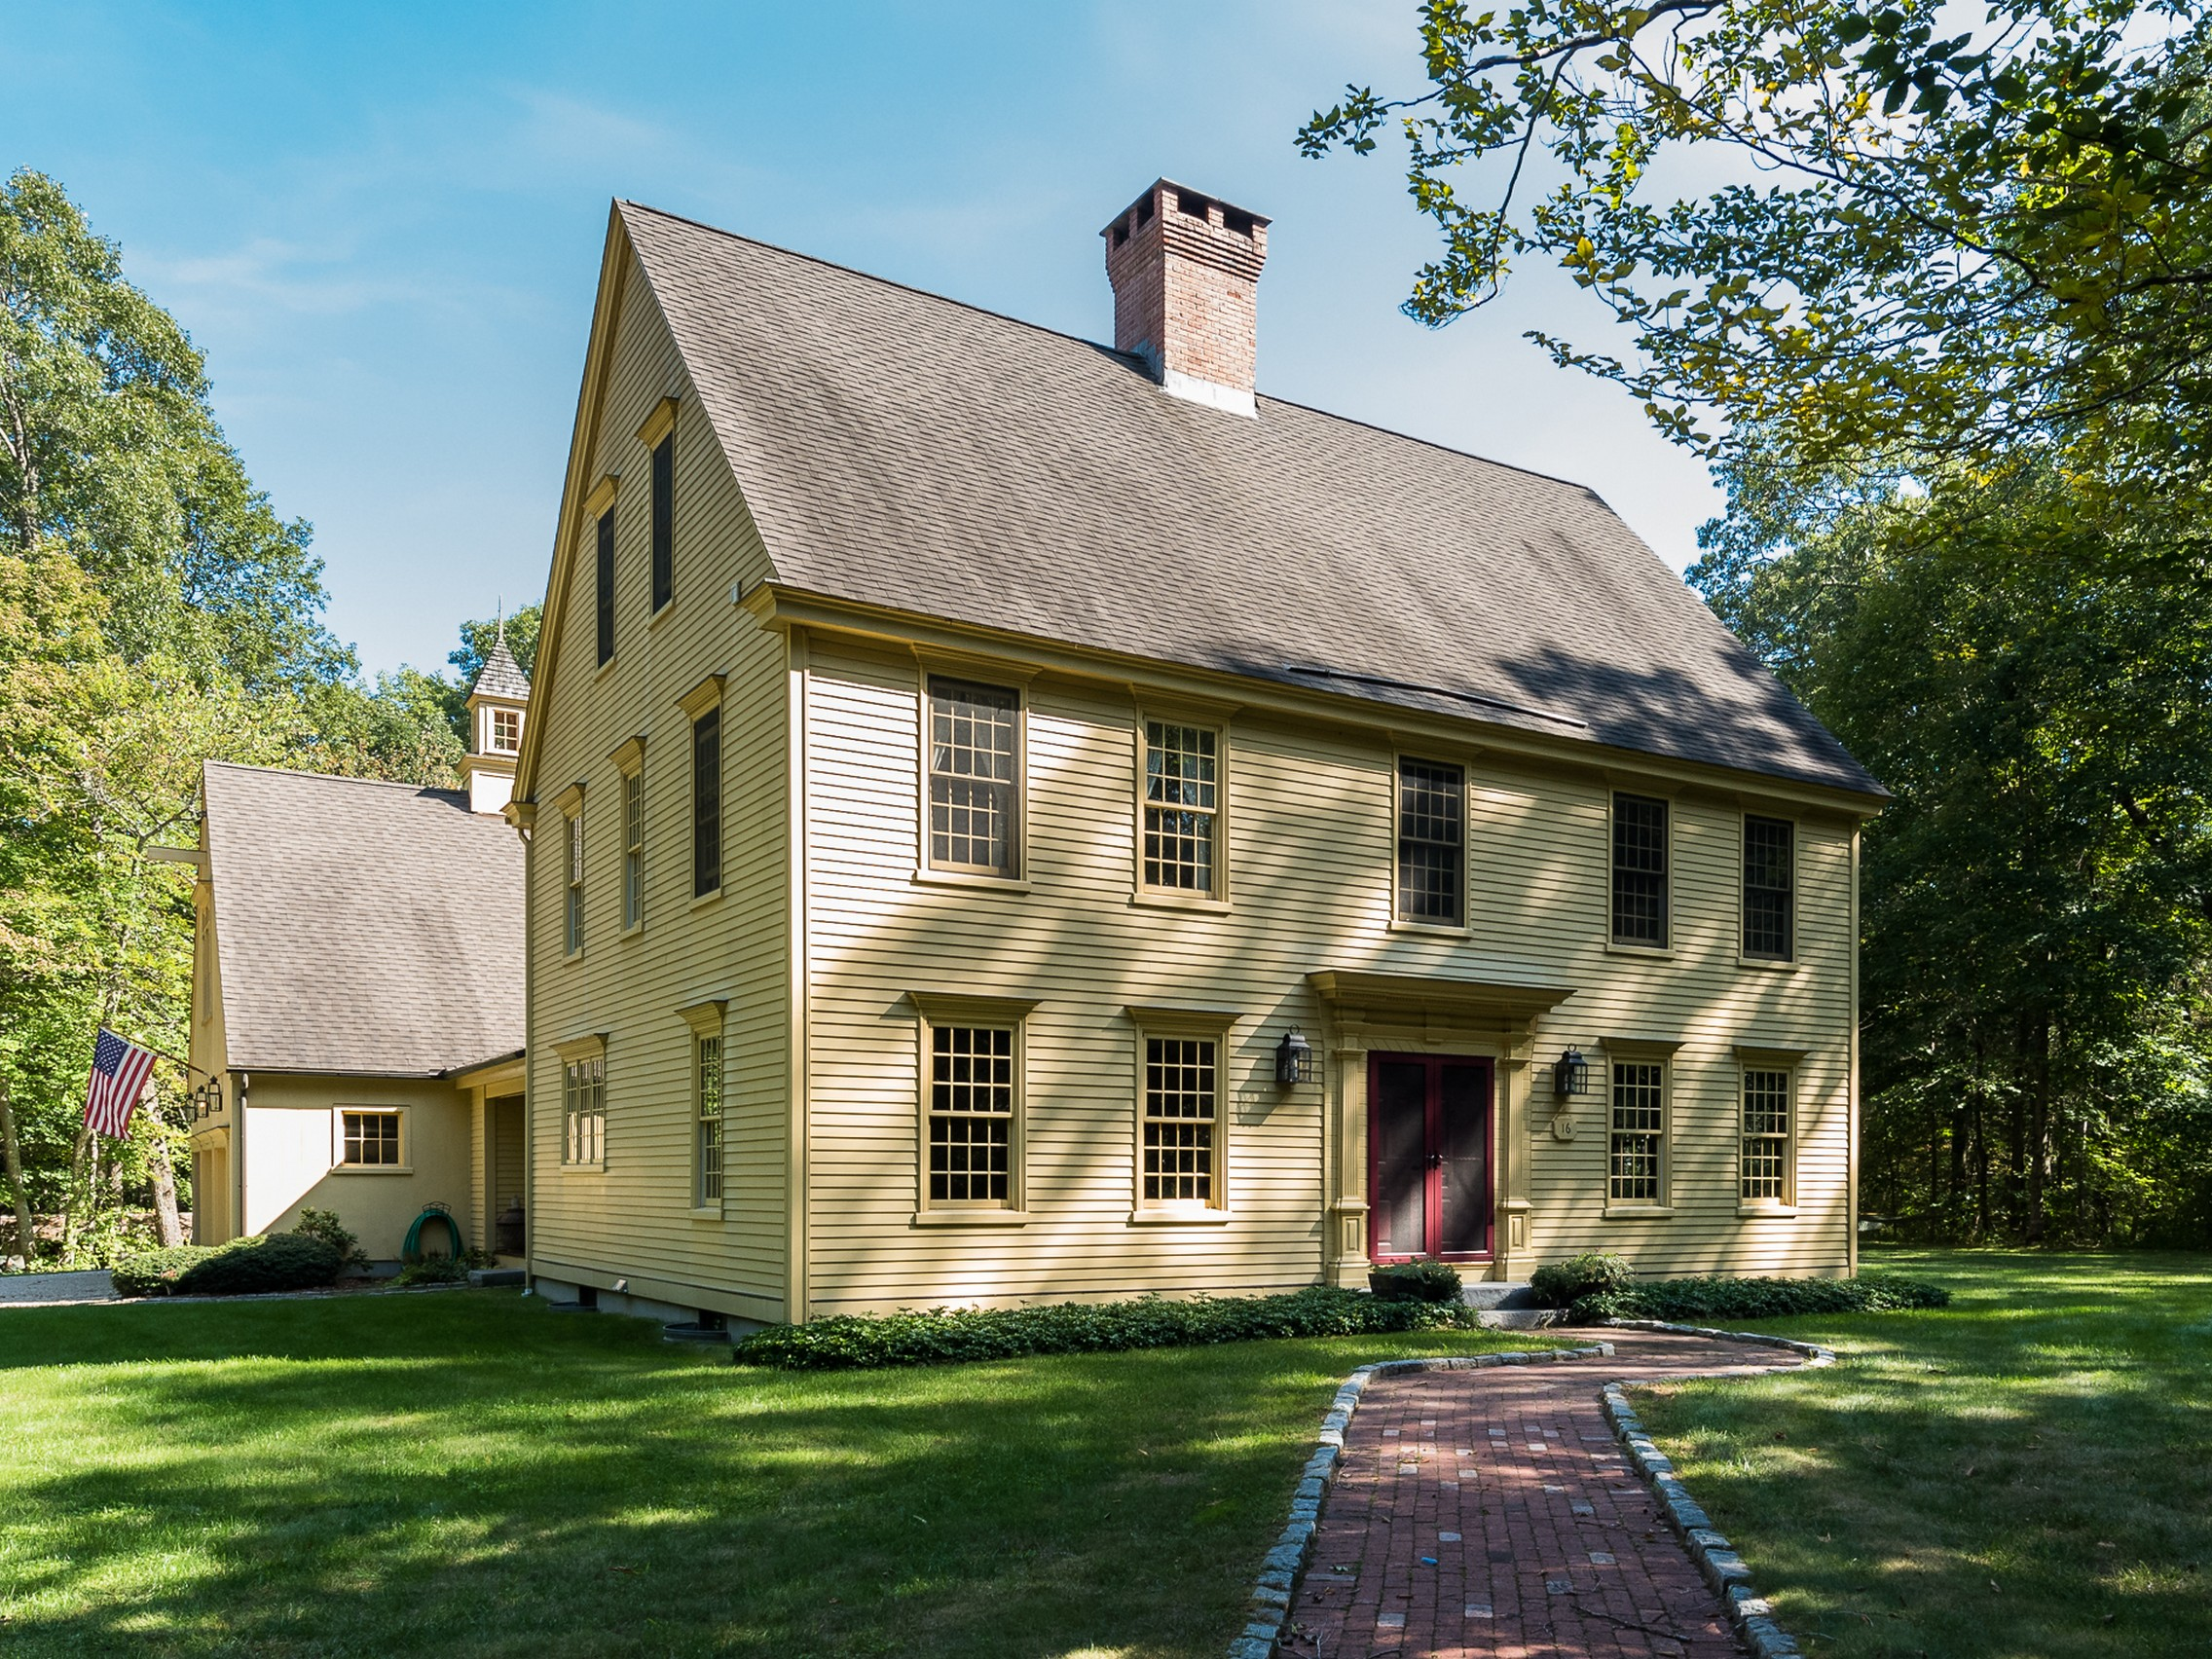 open-houses property at Nestled on 7 Acres in Hadlyme